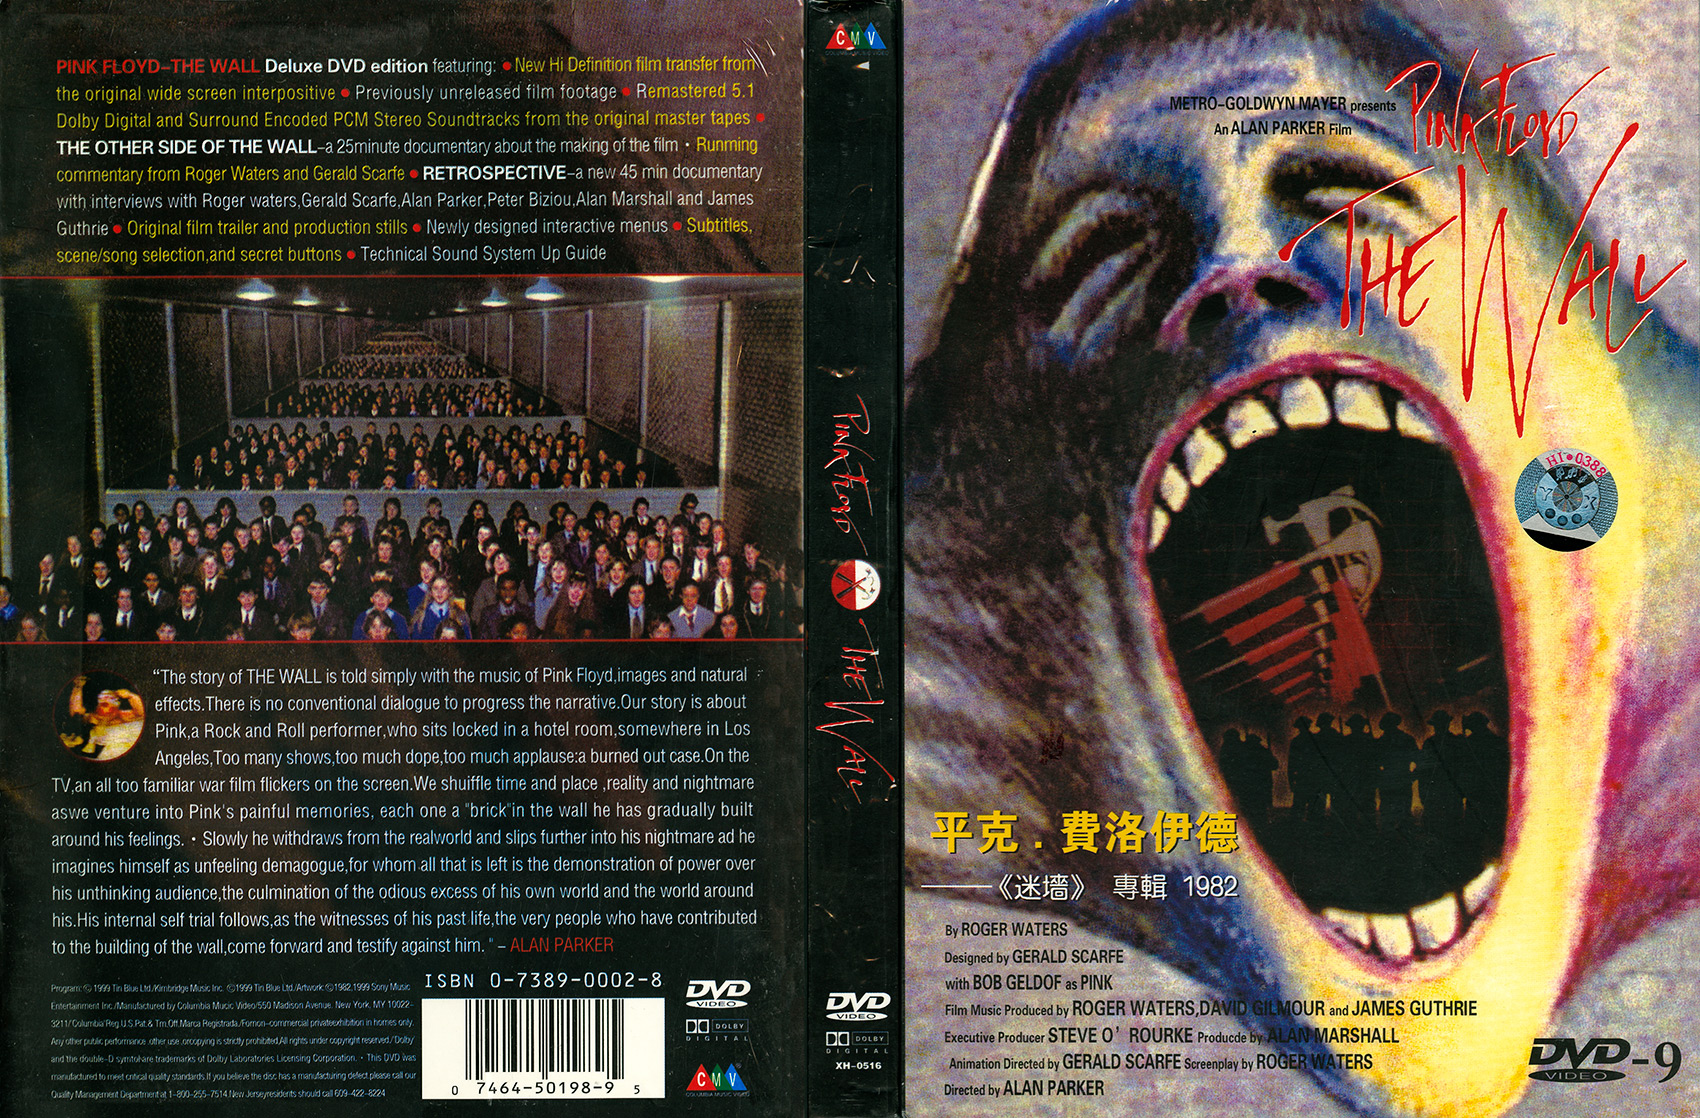 Pink Floyd Archives-Chinese DVD Discography